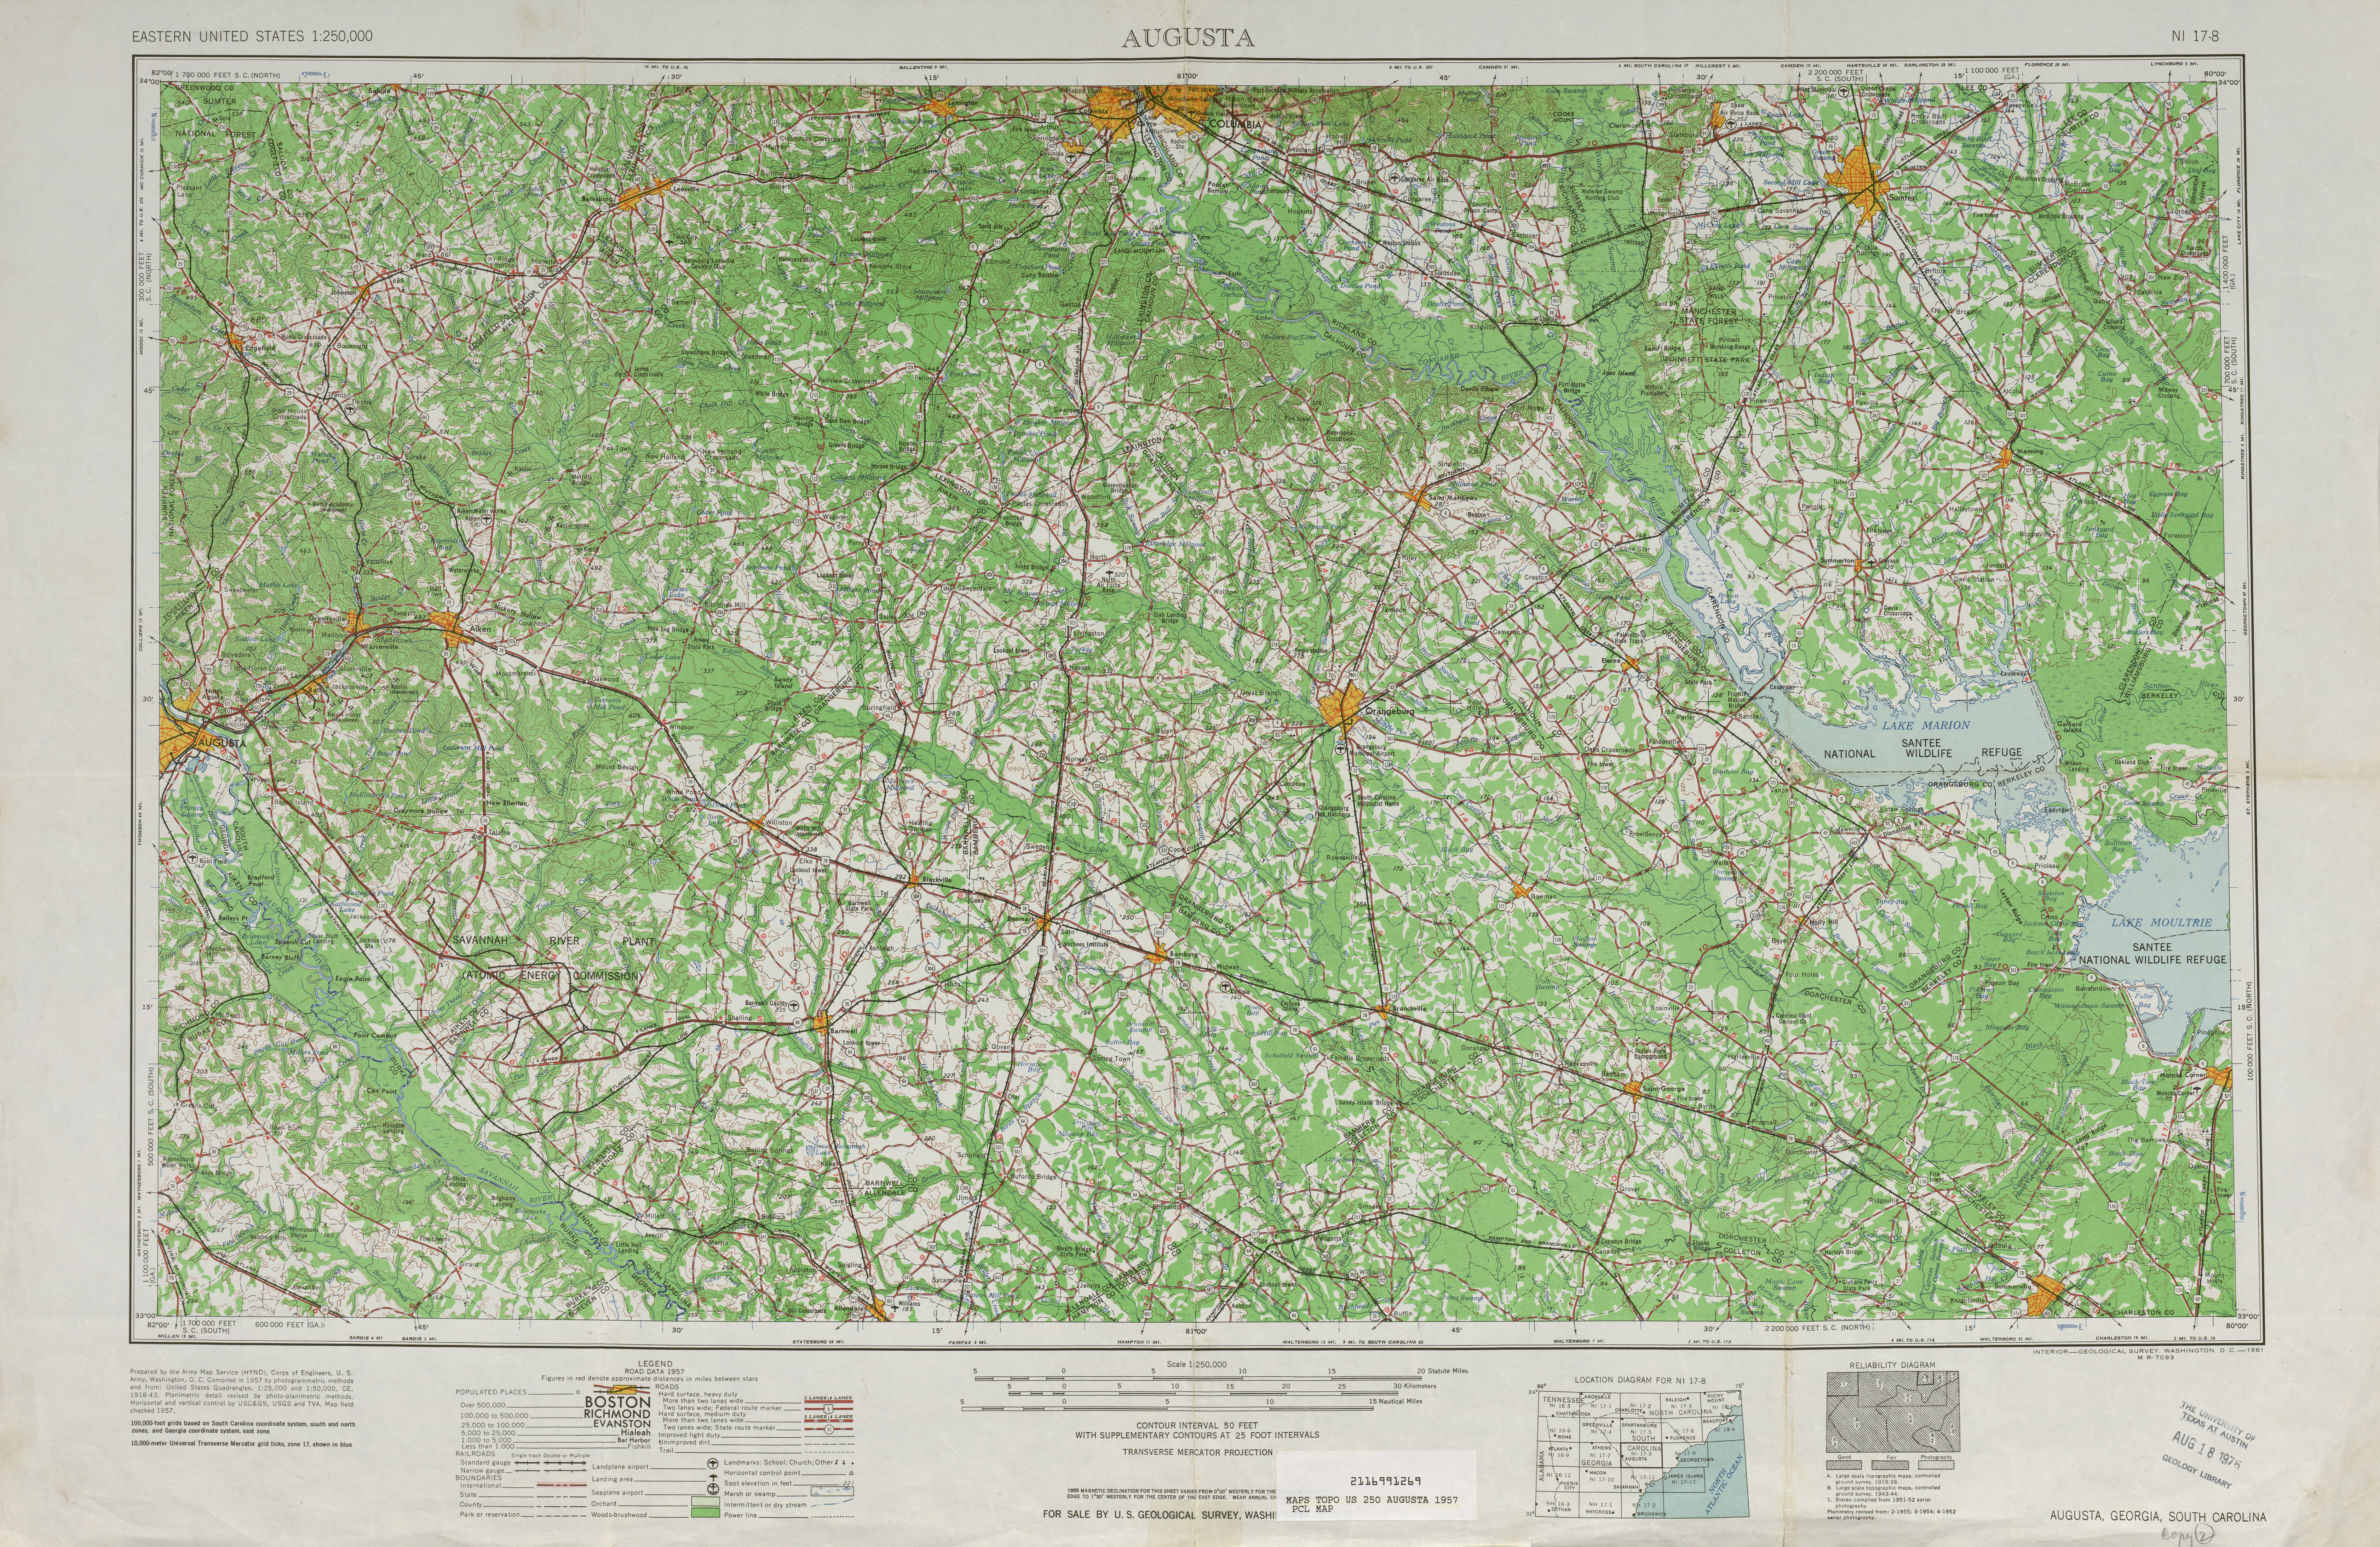 Augusta Topographic Map Sheet, United States 1957